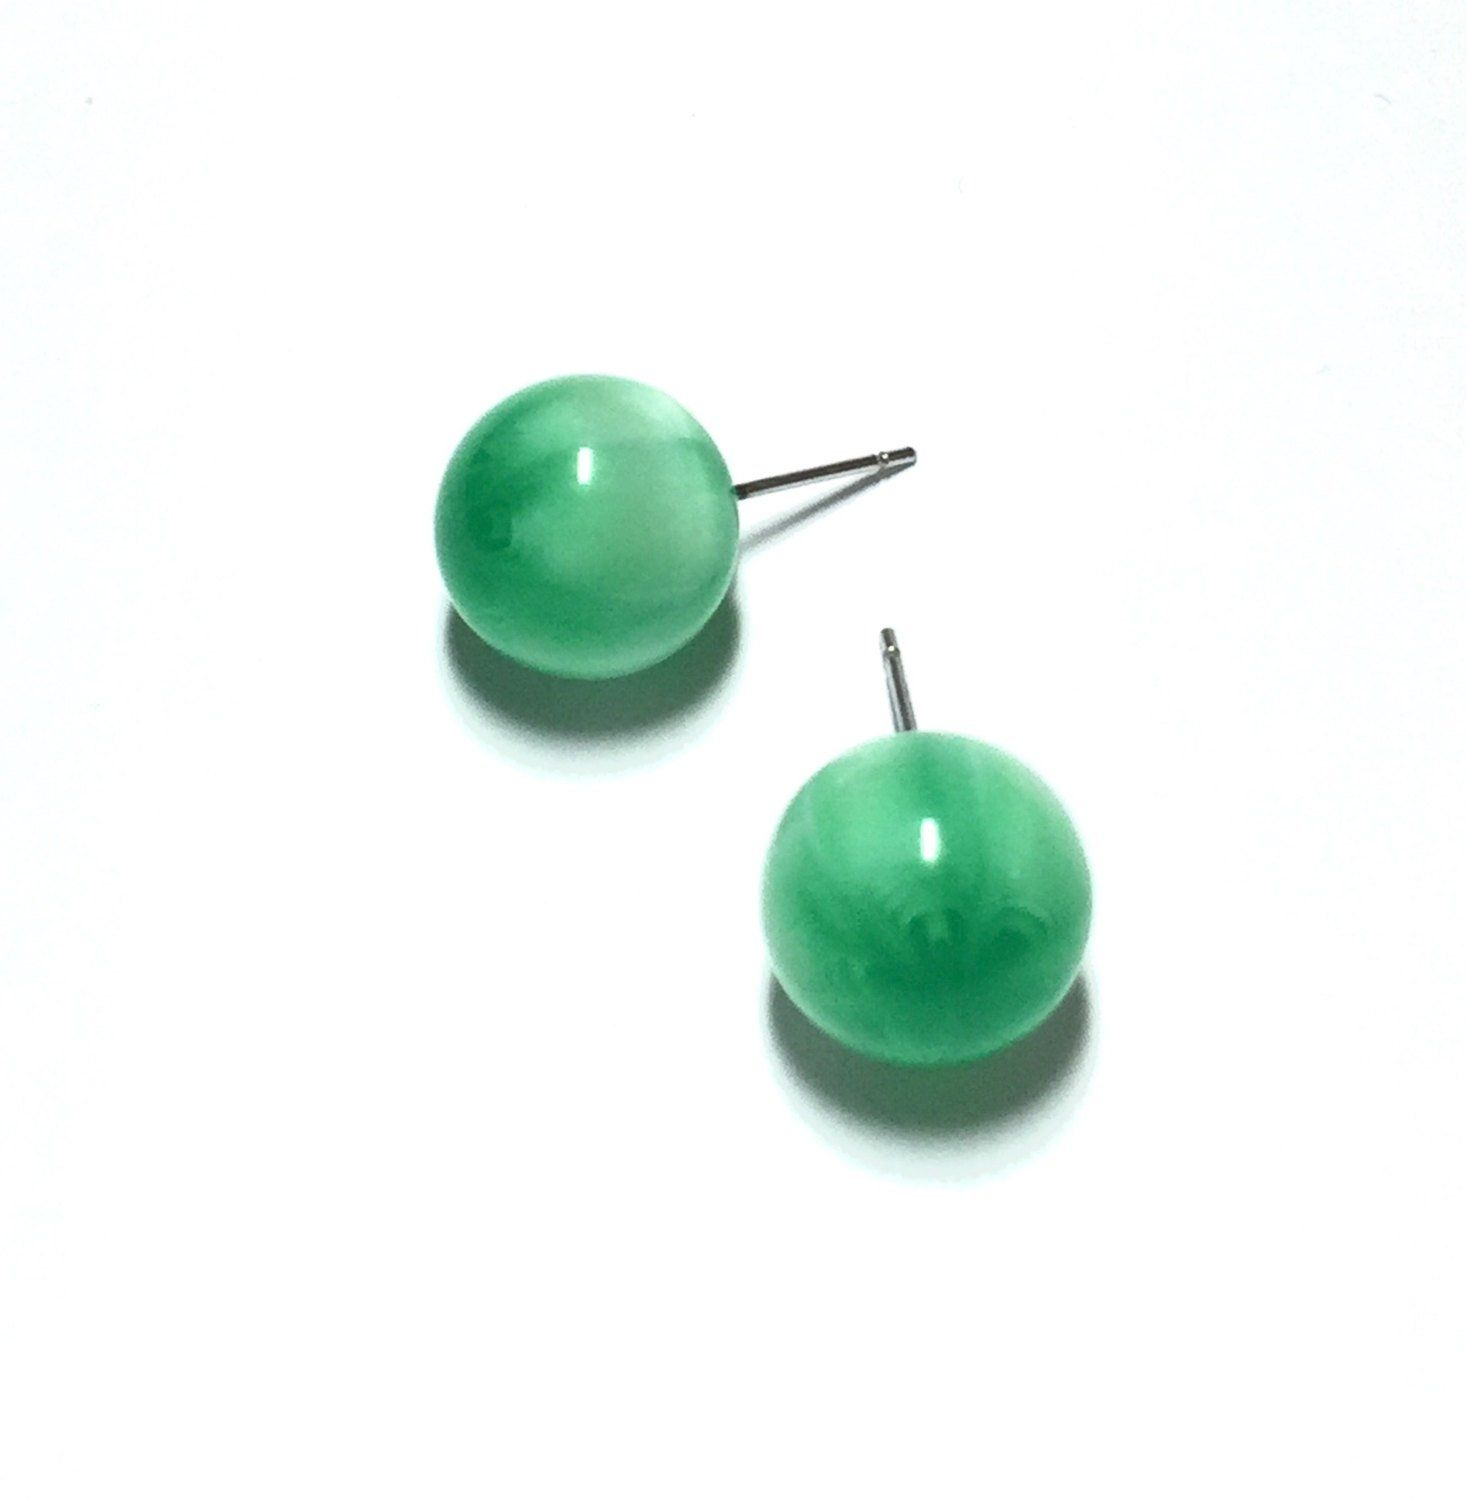 green white shop stones caellisar stud com stone with earrings emerald gold